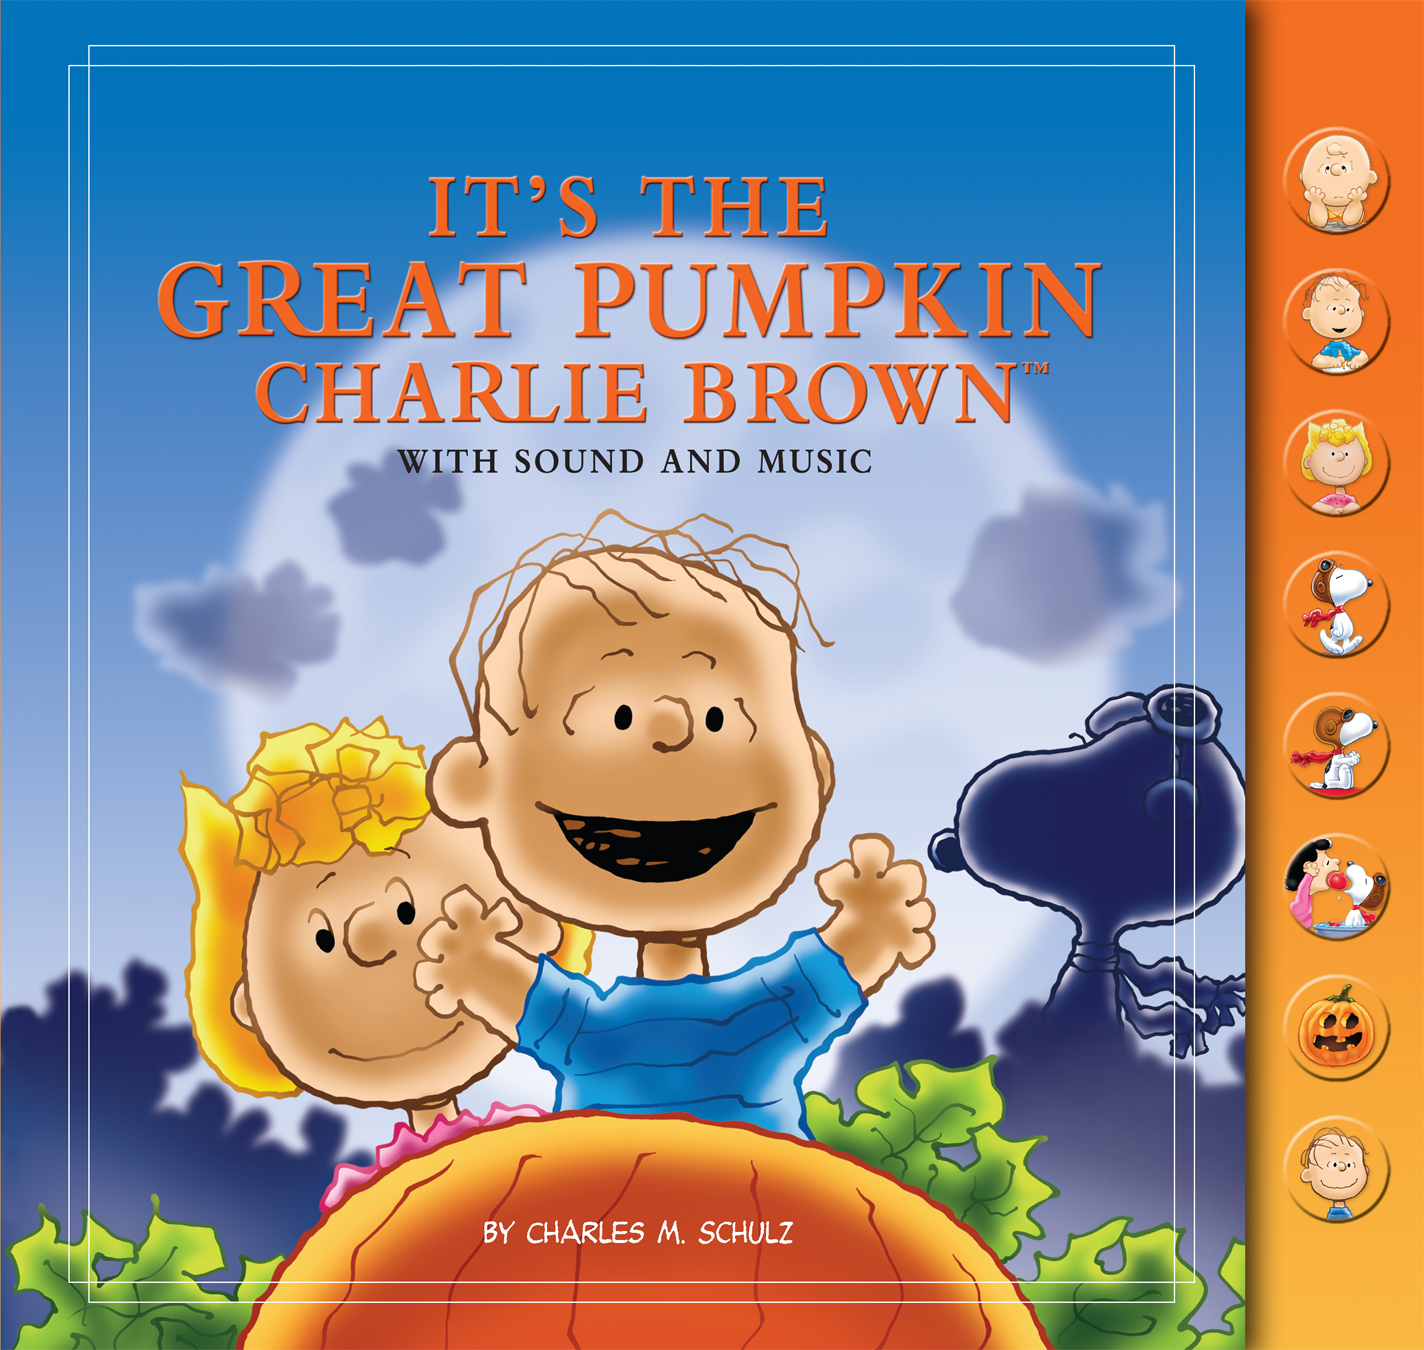 It's The Great Pumpkin Charlie Brown Quotes Interesting It's The Great Pumpkin Charlie Brown With Sound And Music